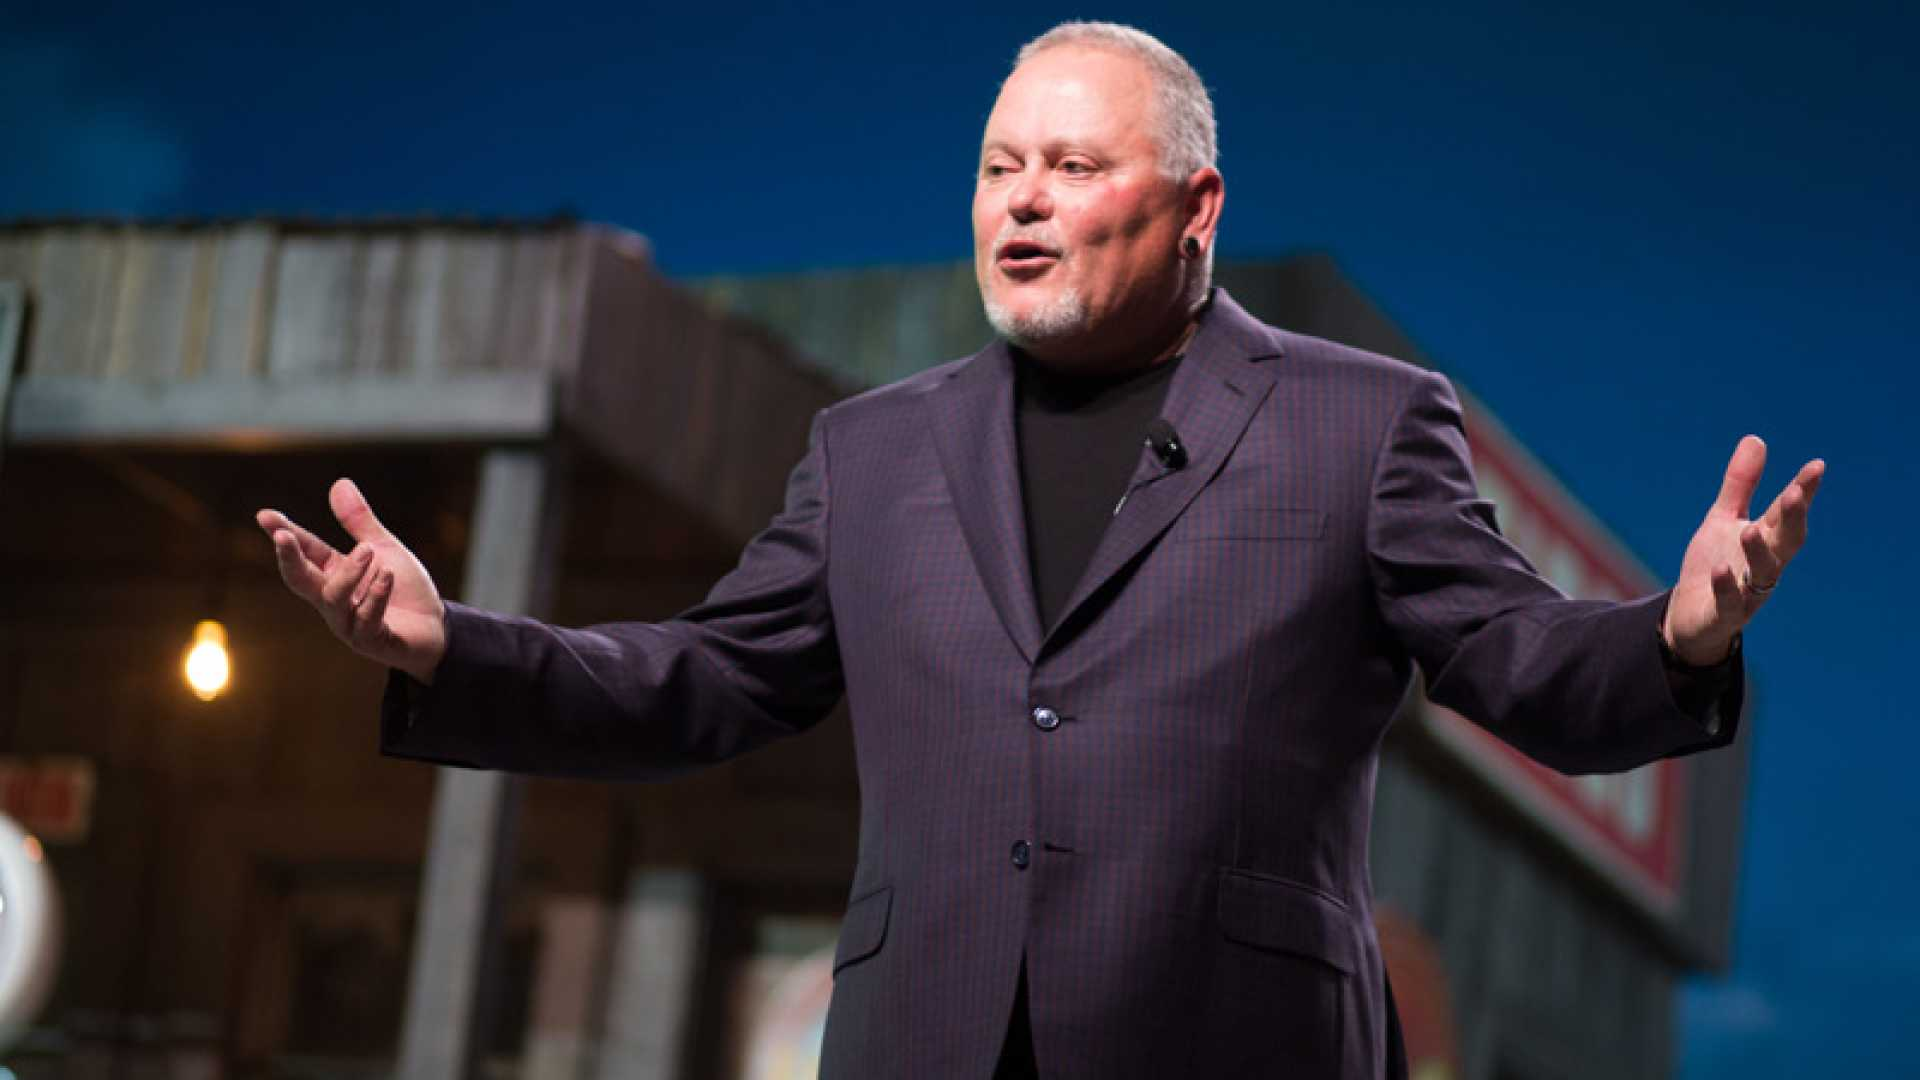 GoDaddy Founder Bob Parsons Celebrates Racy Ads His Company Now Disavows